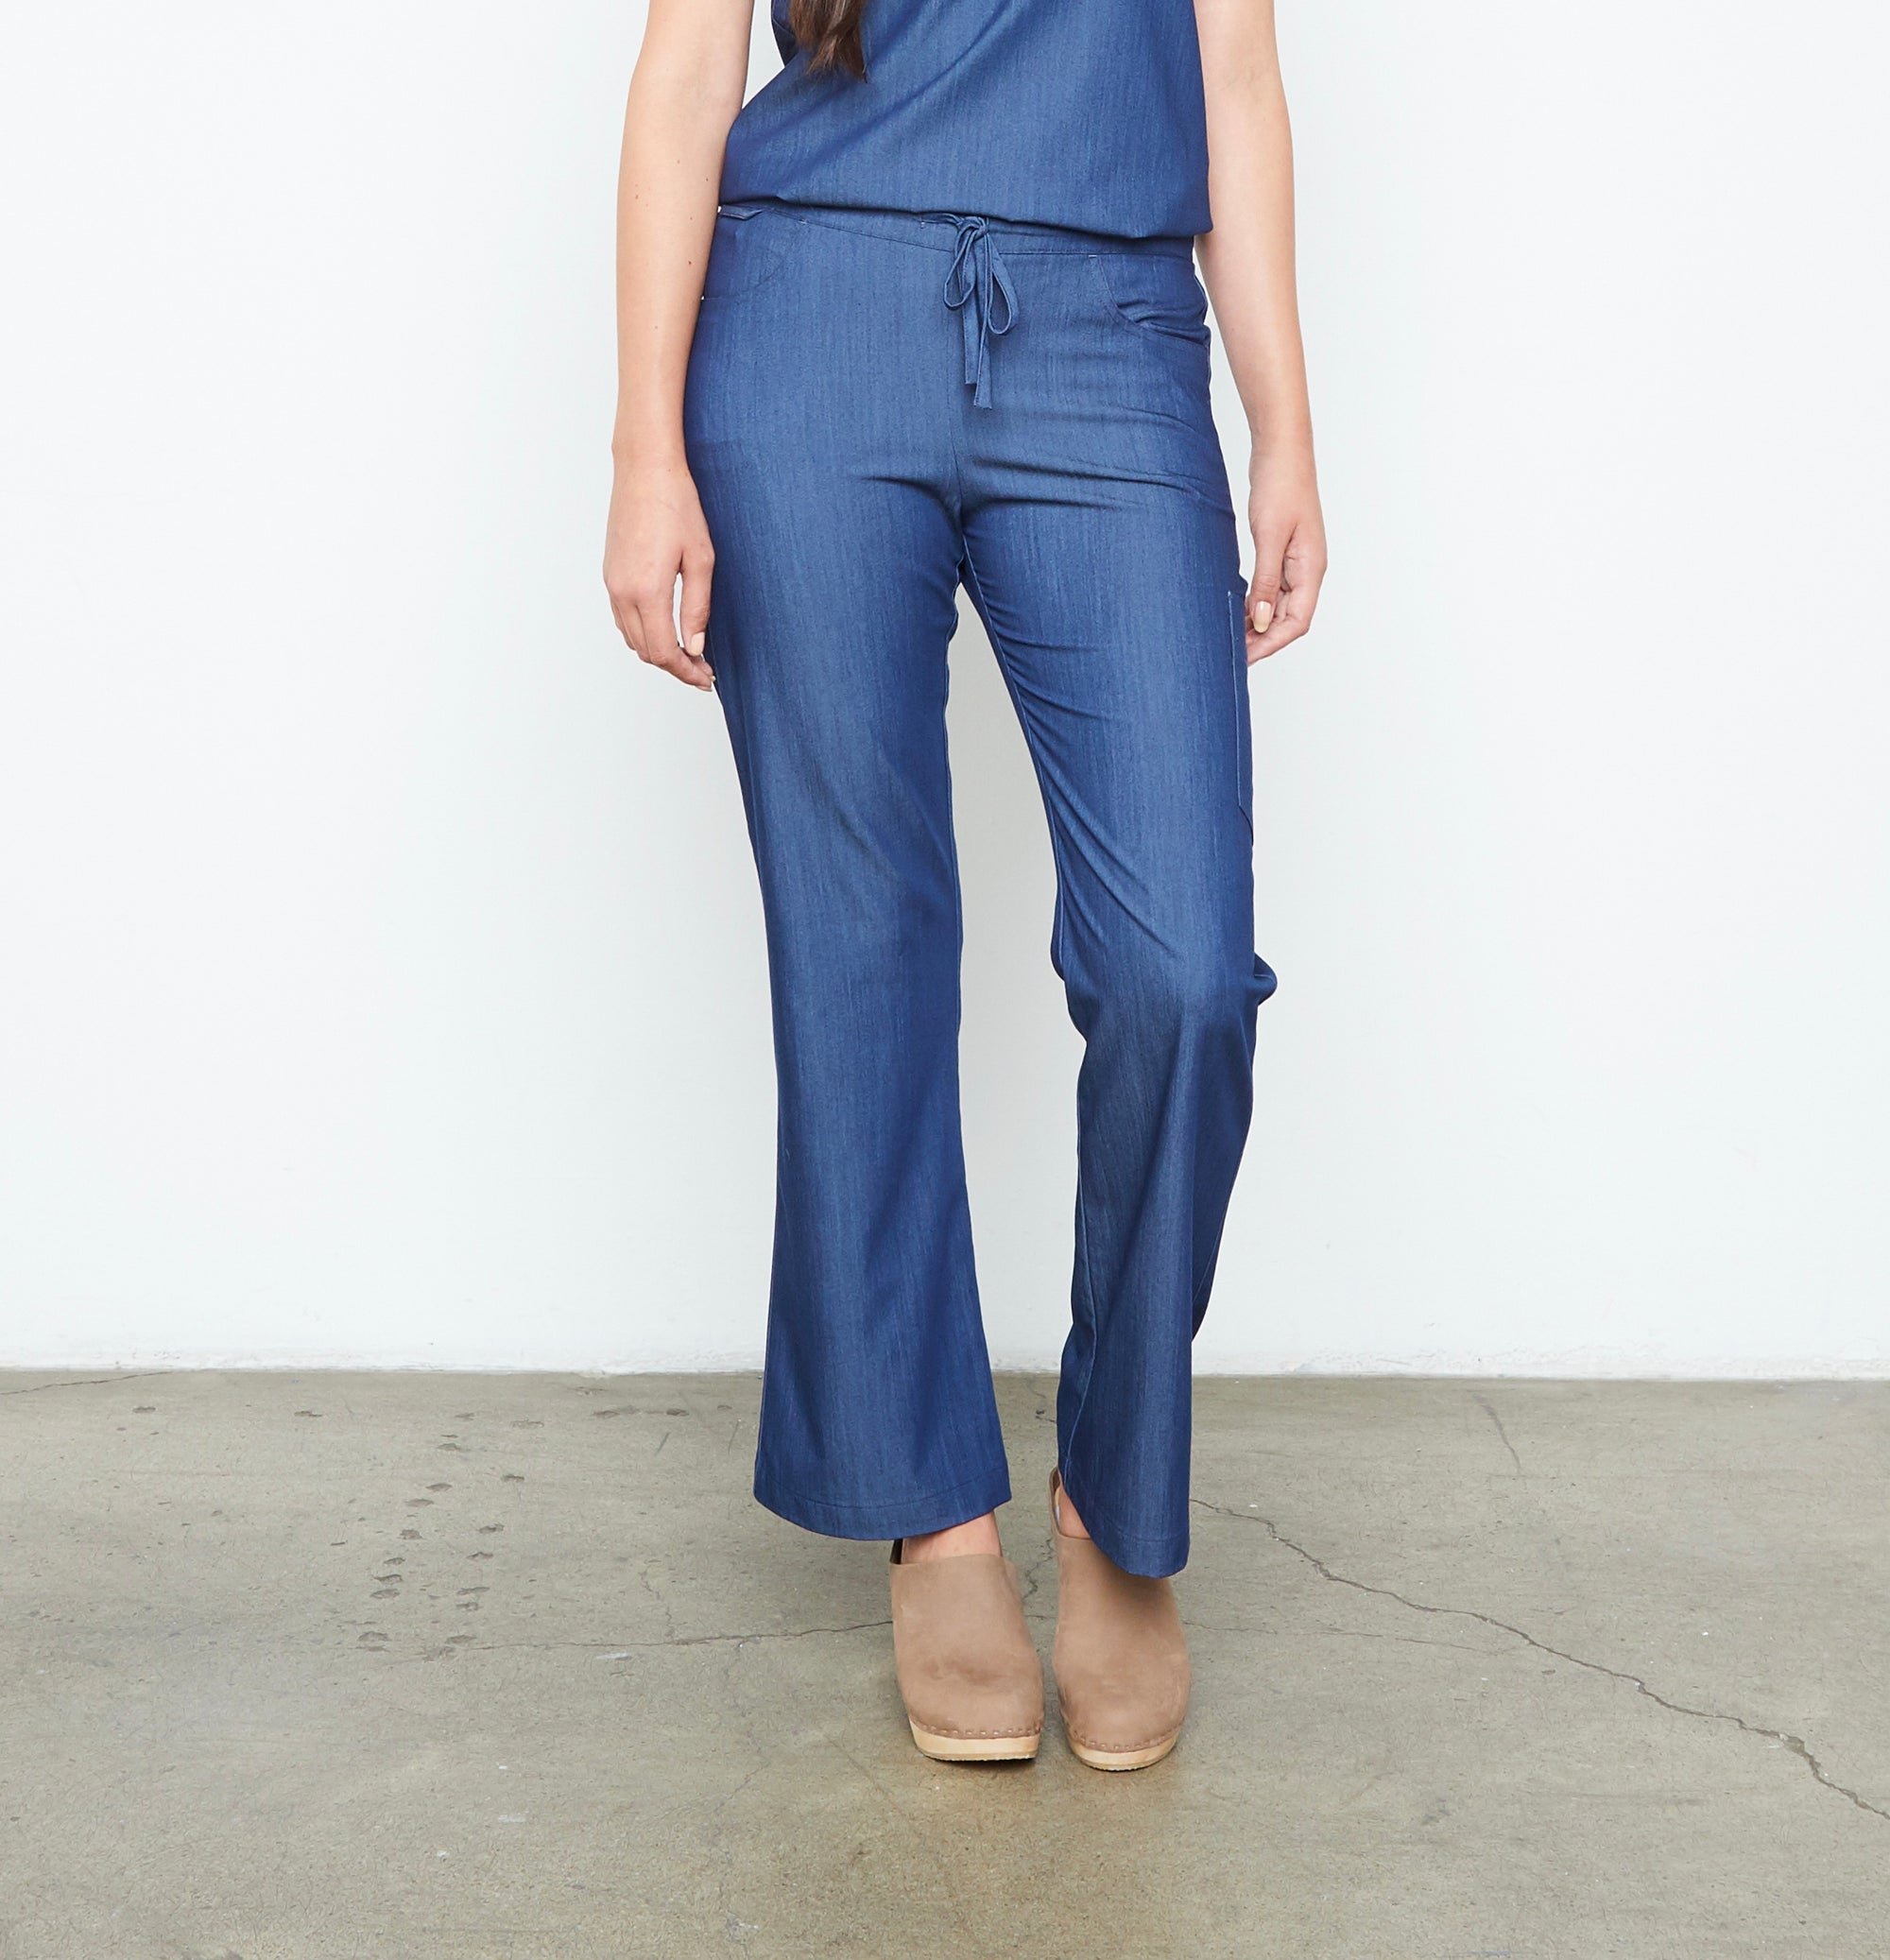 Maverick Pant - Tall (Neptune Dust) XXS | Fabled makes beautiful high quality scrub pants for women. Scrubs fashion for women doctors and female medical workers.